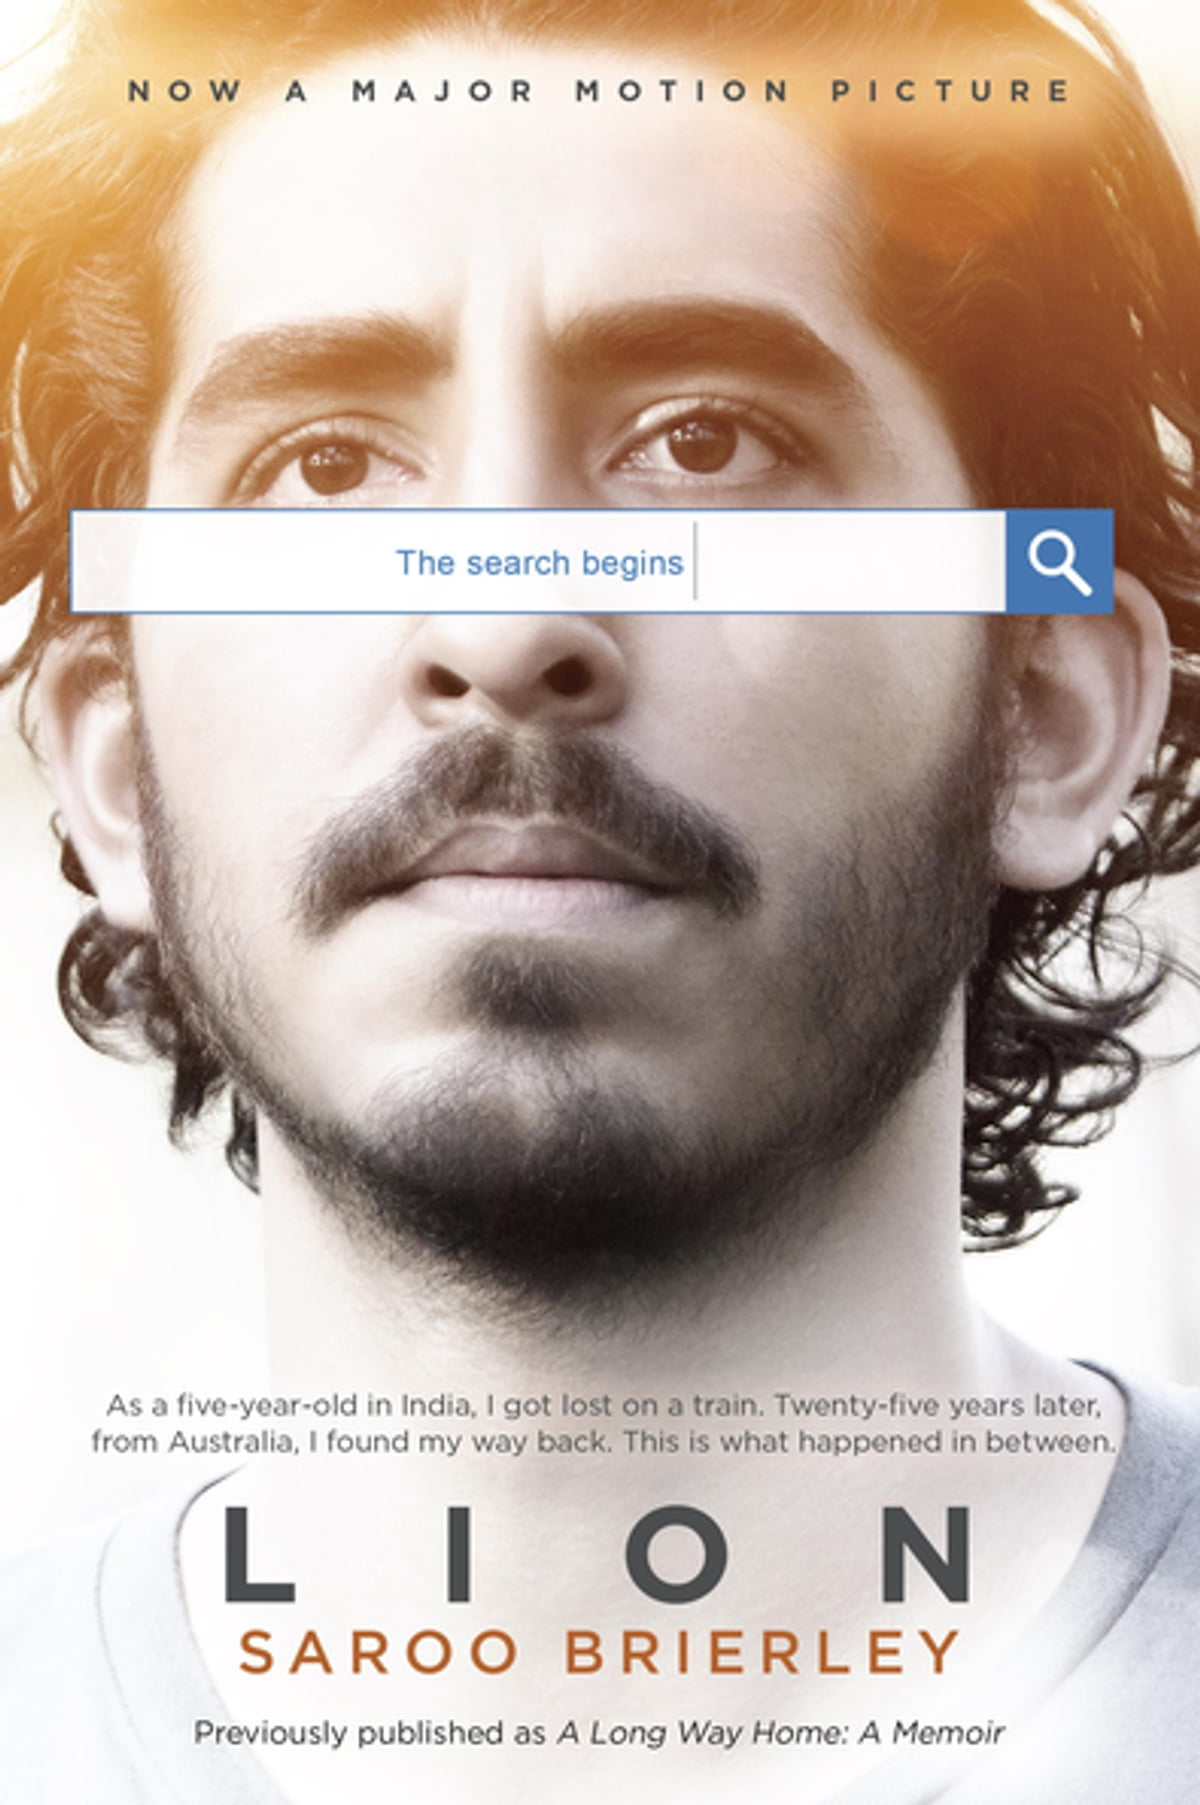 Lion (movie Tiein) Ebook By Saroo Brierley